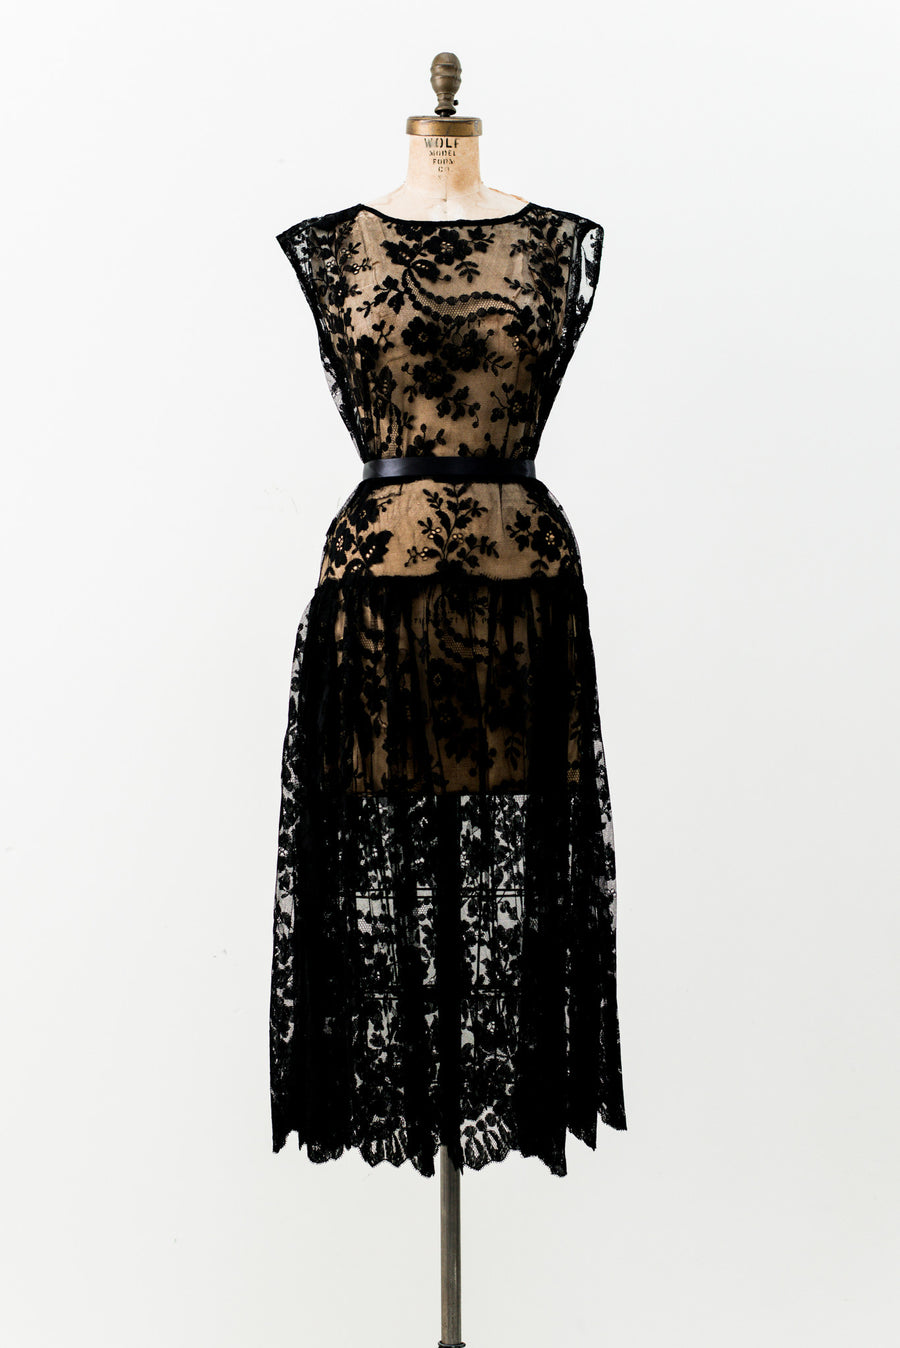 1920s Black Lace Dress - M